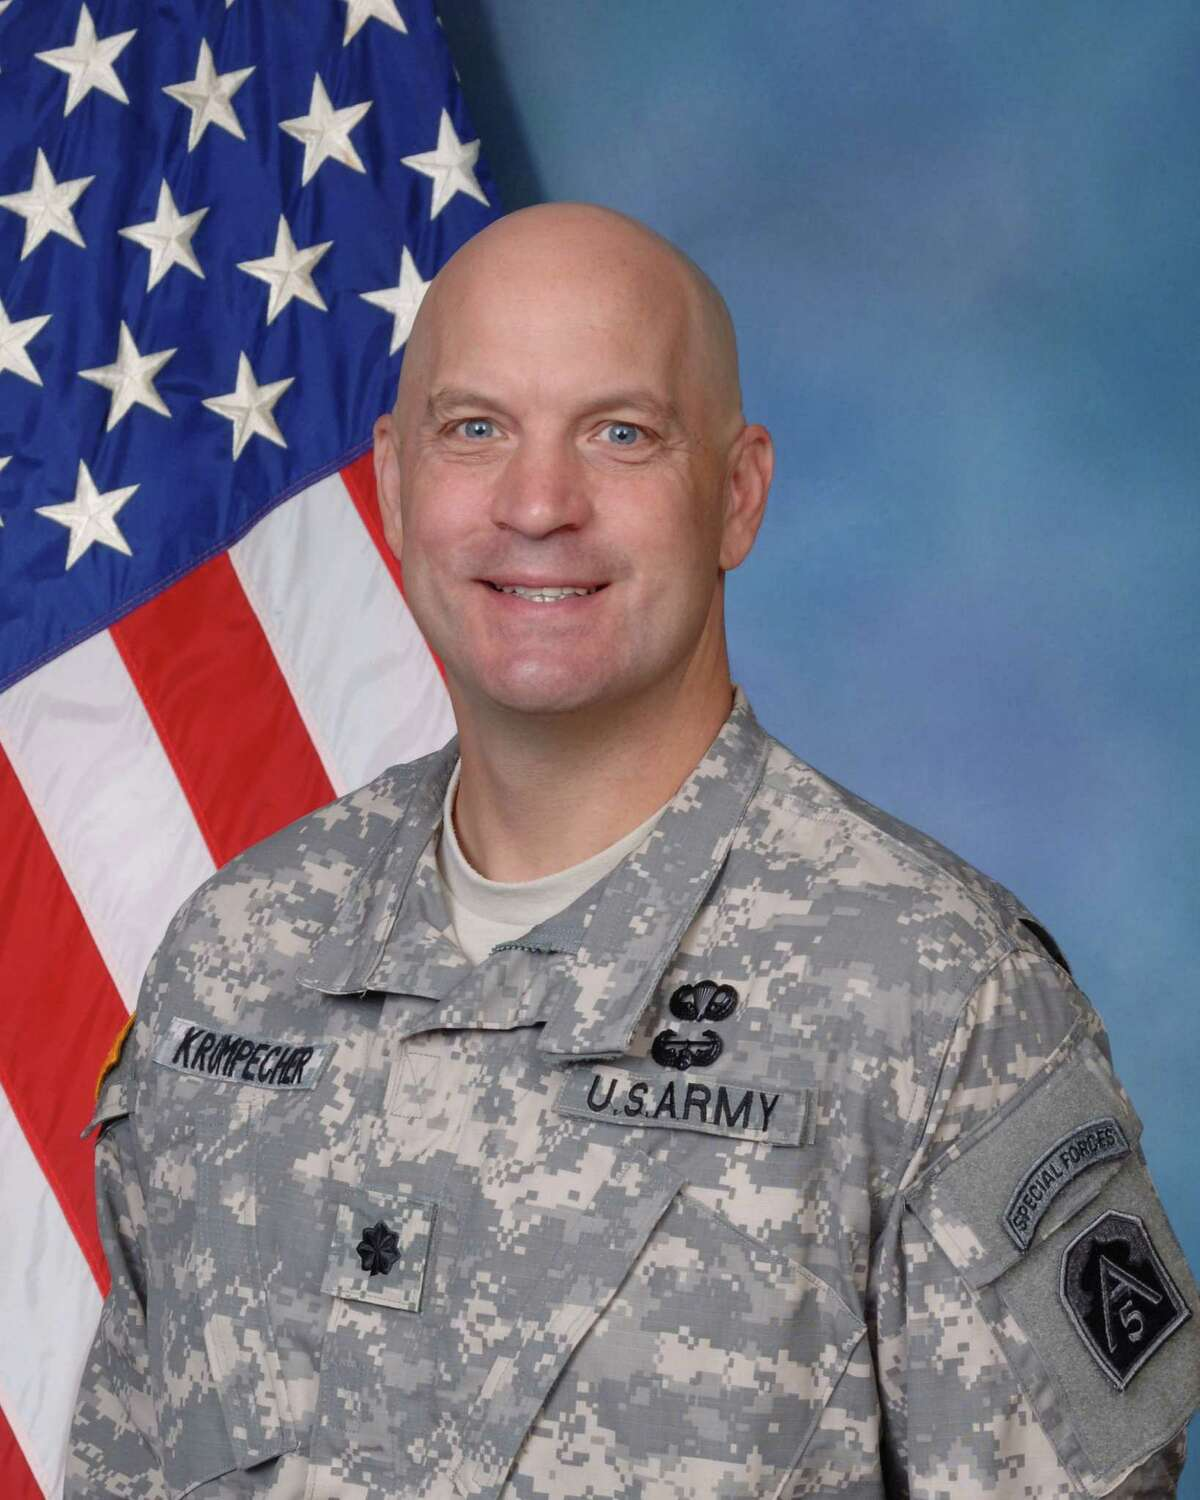 Lt. Col. Zoltan Krompecher is a battalion commander in Army North.